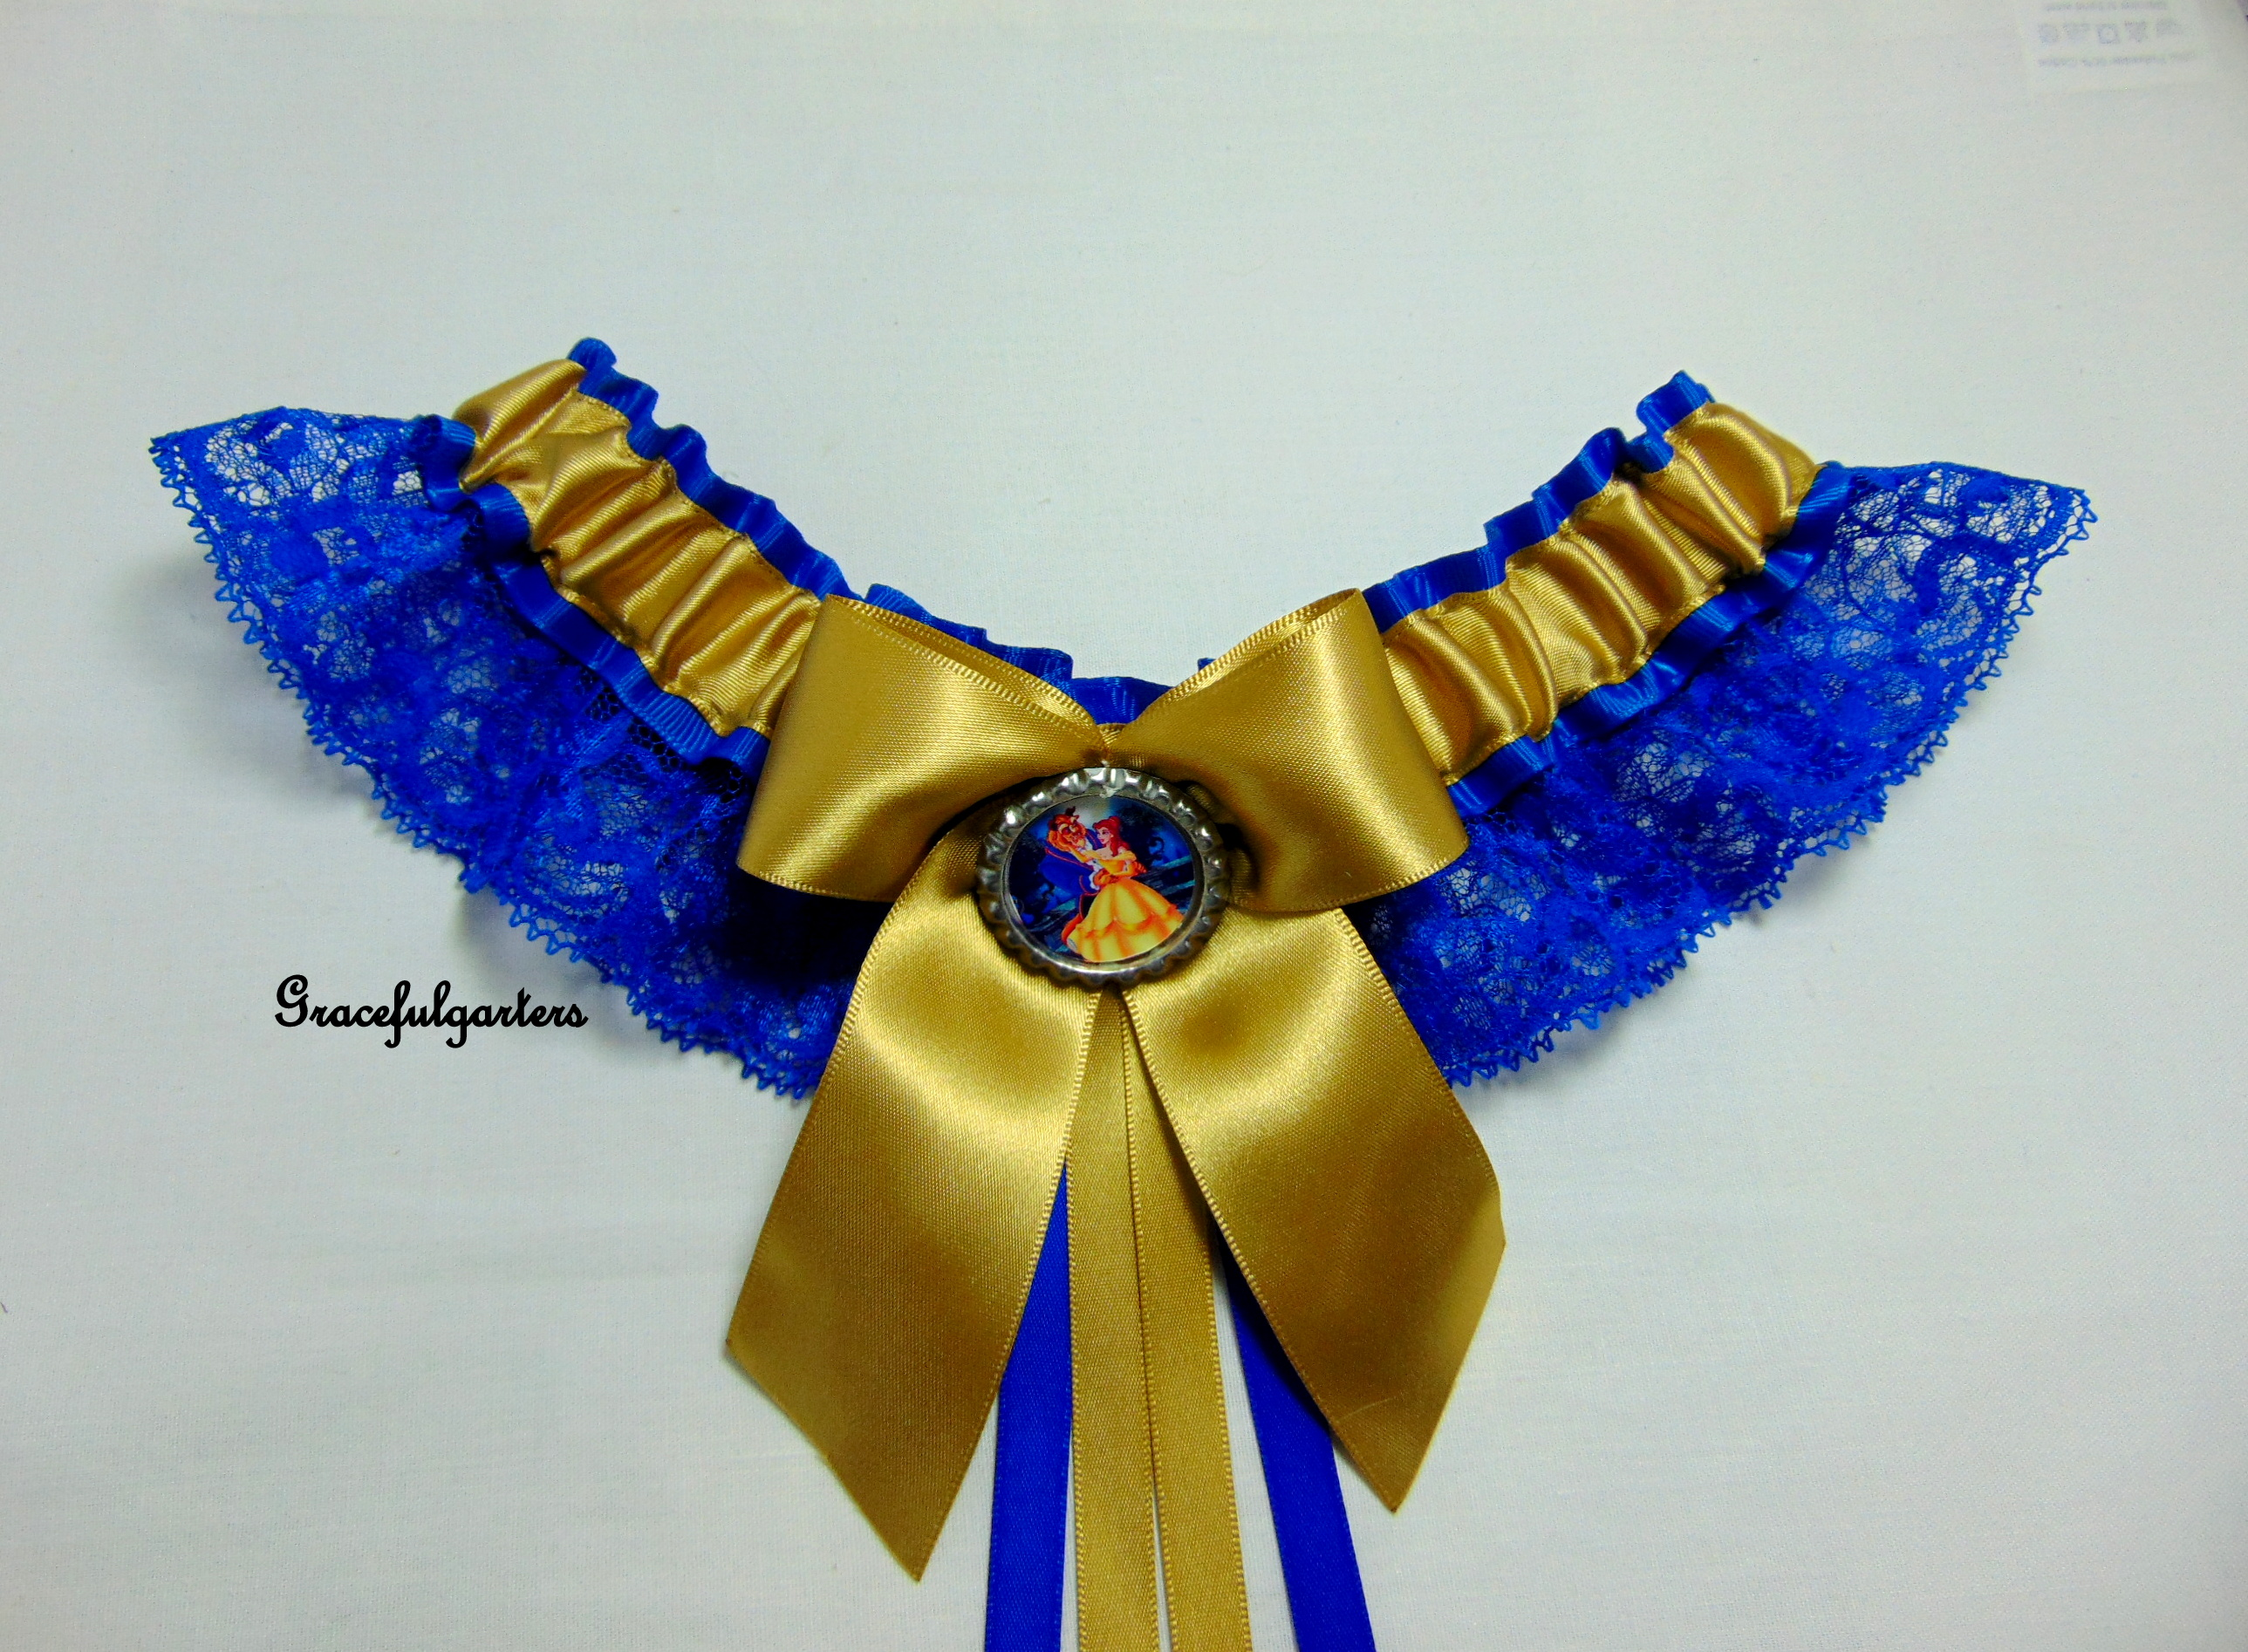 Beauty And The Beast Royal Blue & Gold Lace Bridal Wedding Garter